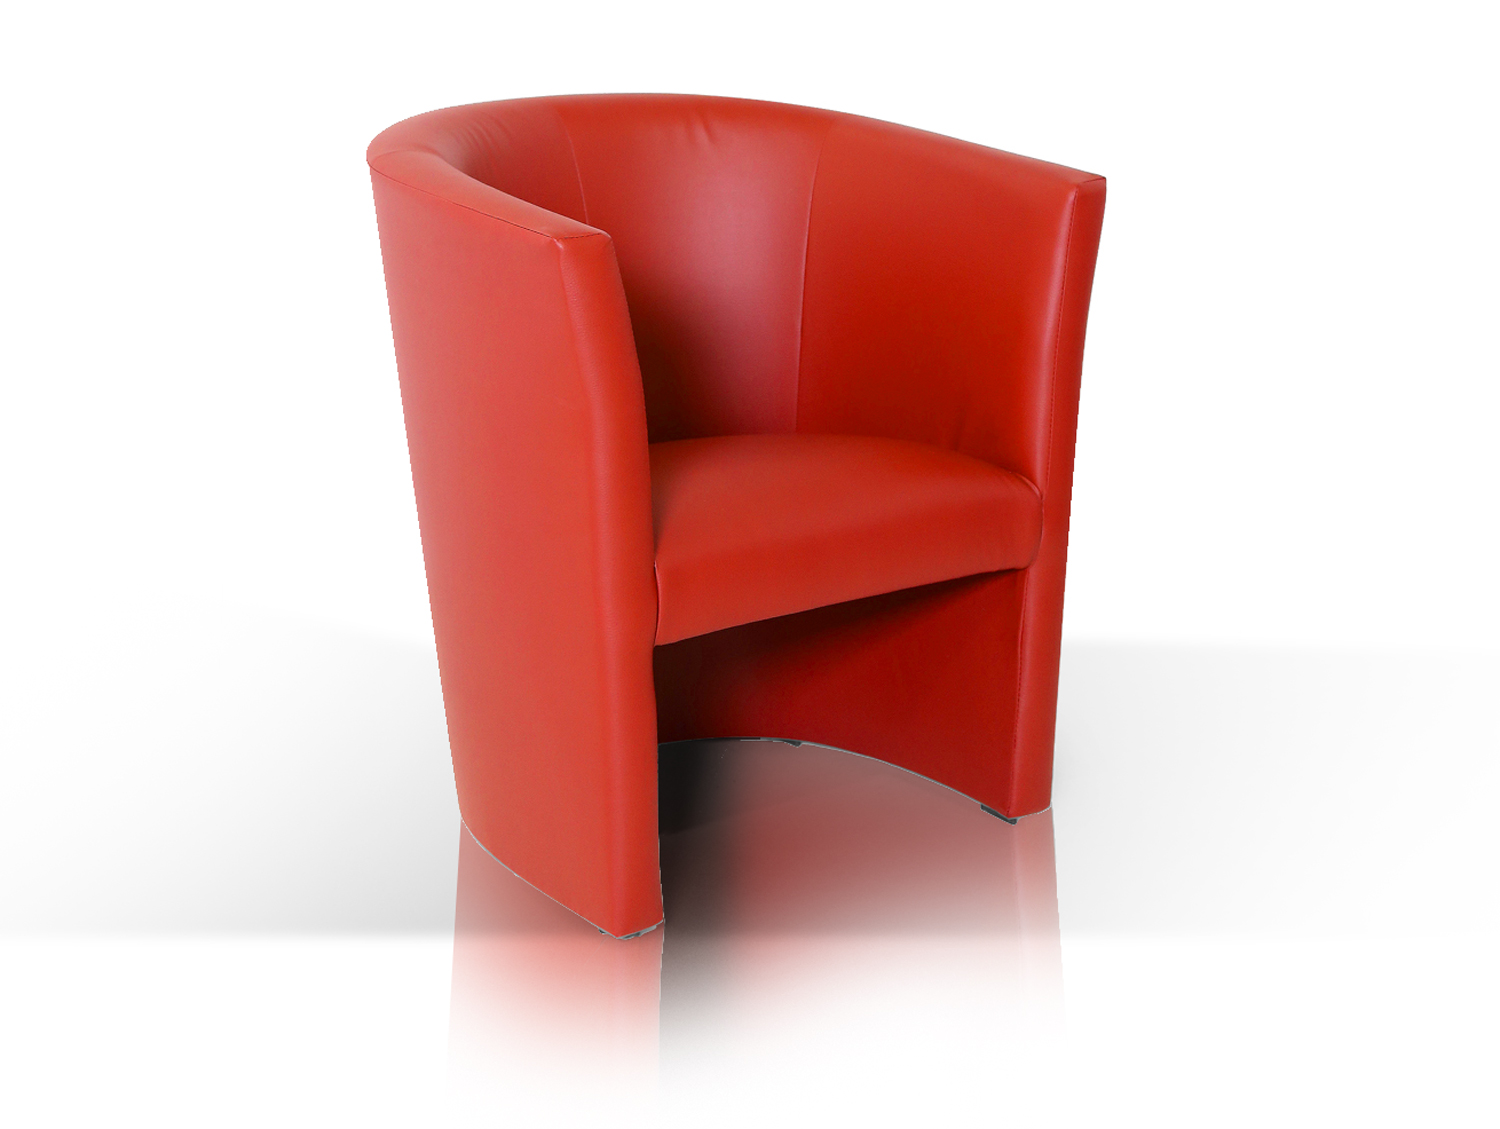 Sessel Charly Relaxsessel Mit Hocker Charly Polstersessel In 4 Farben